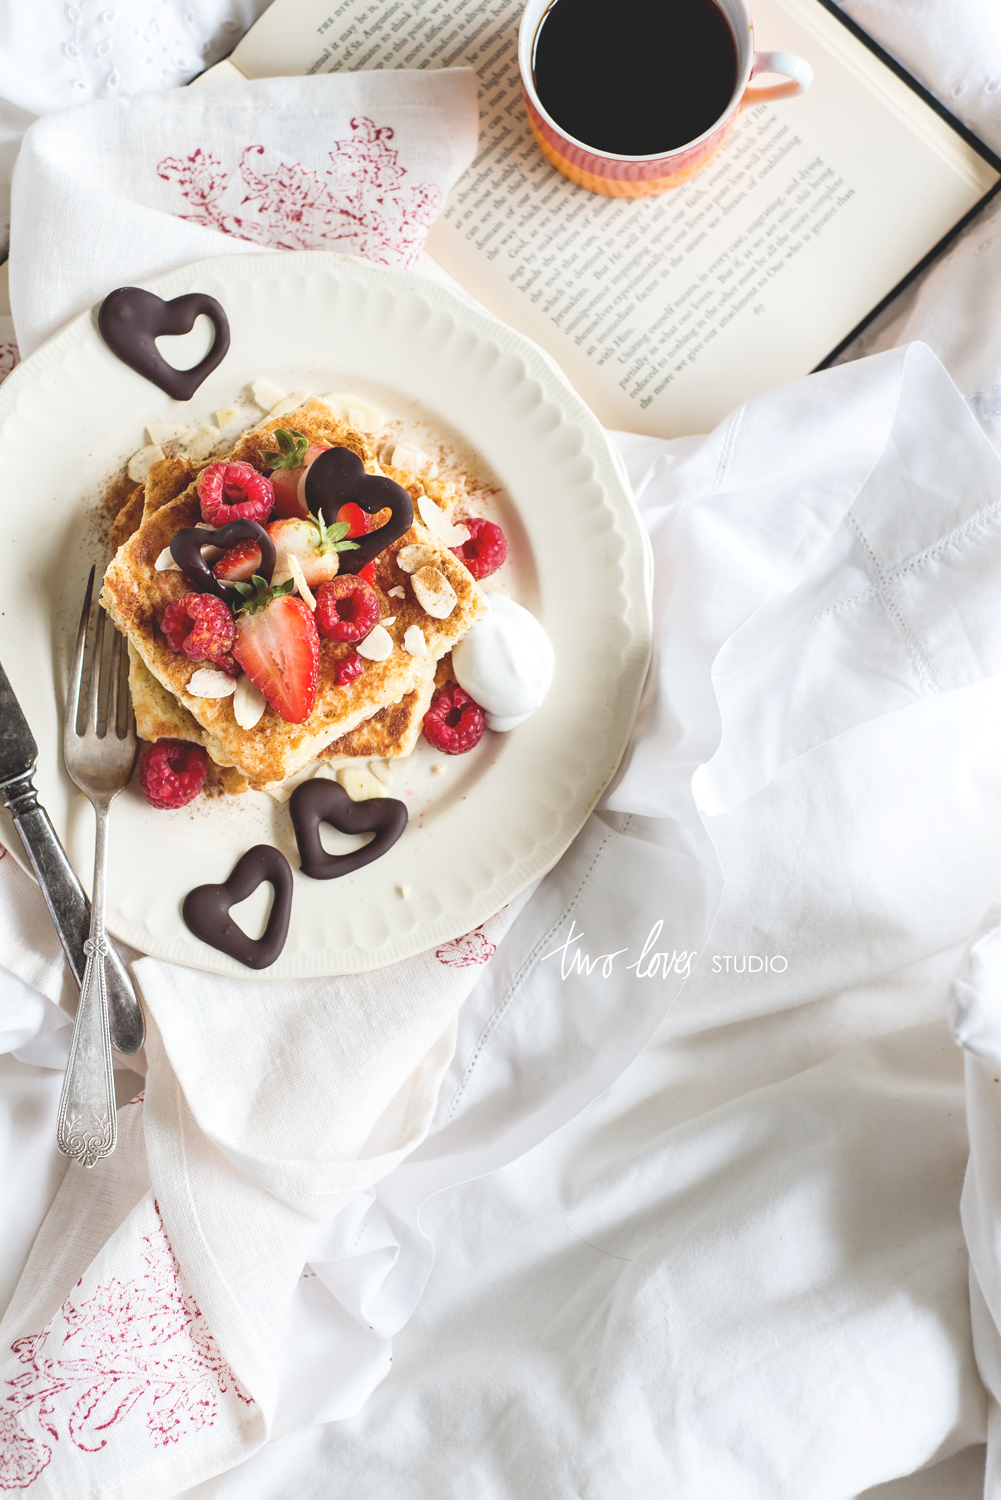 two-loves-studio-coconut-french-toast-with-dark-chocolate-hearts4w